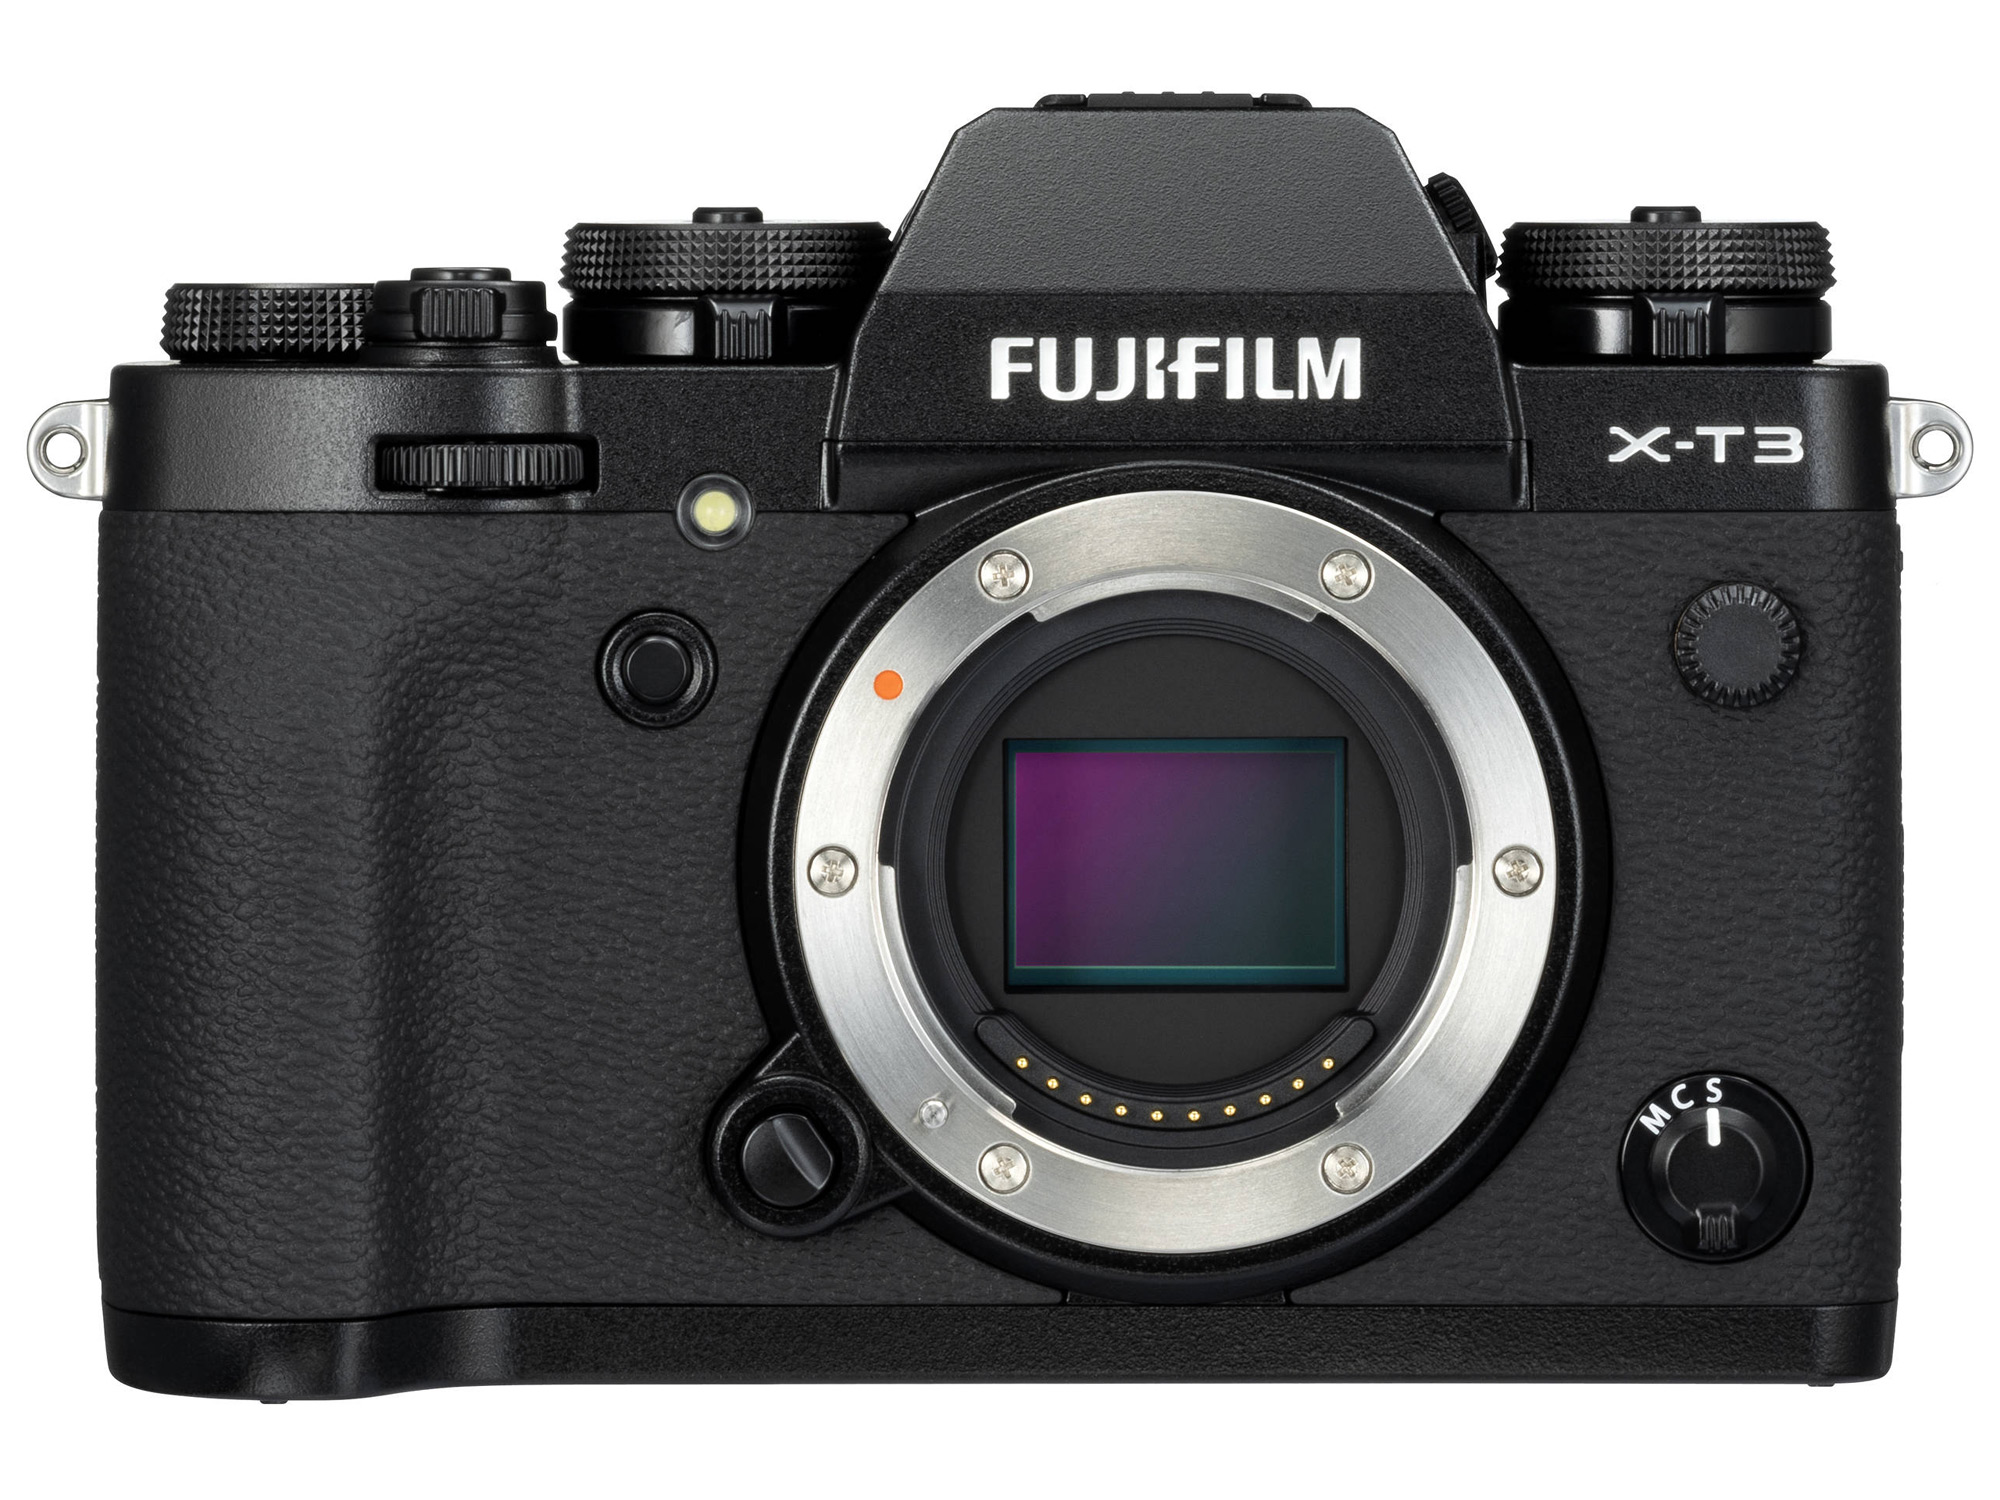 Fujifilm X-T3 Body Only - Black